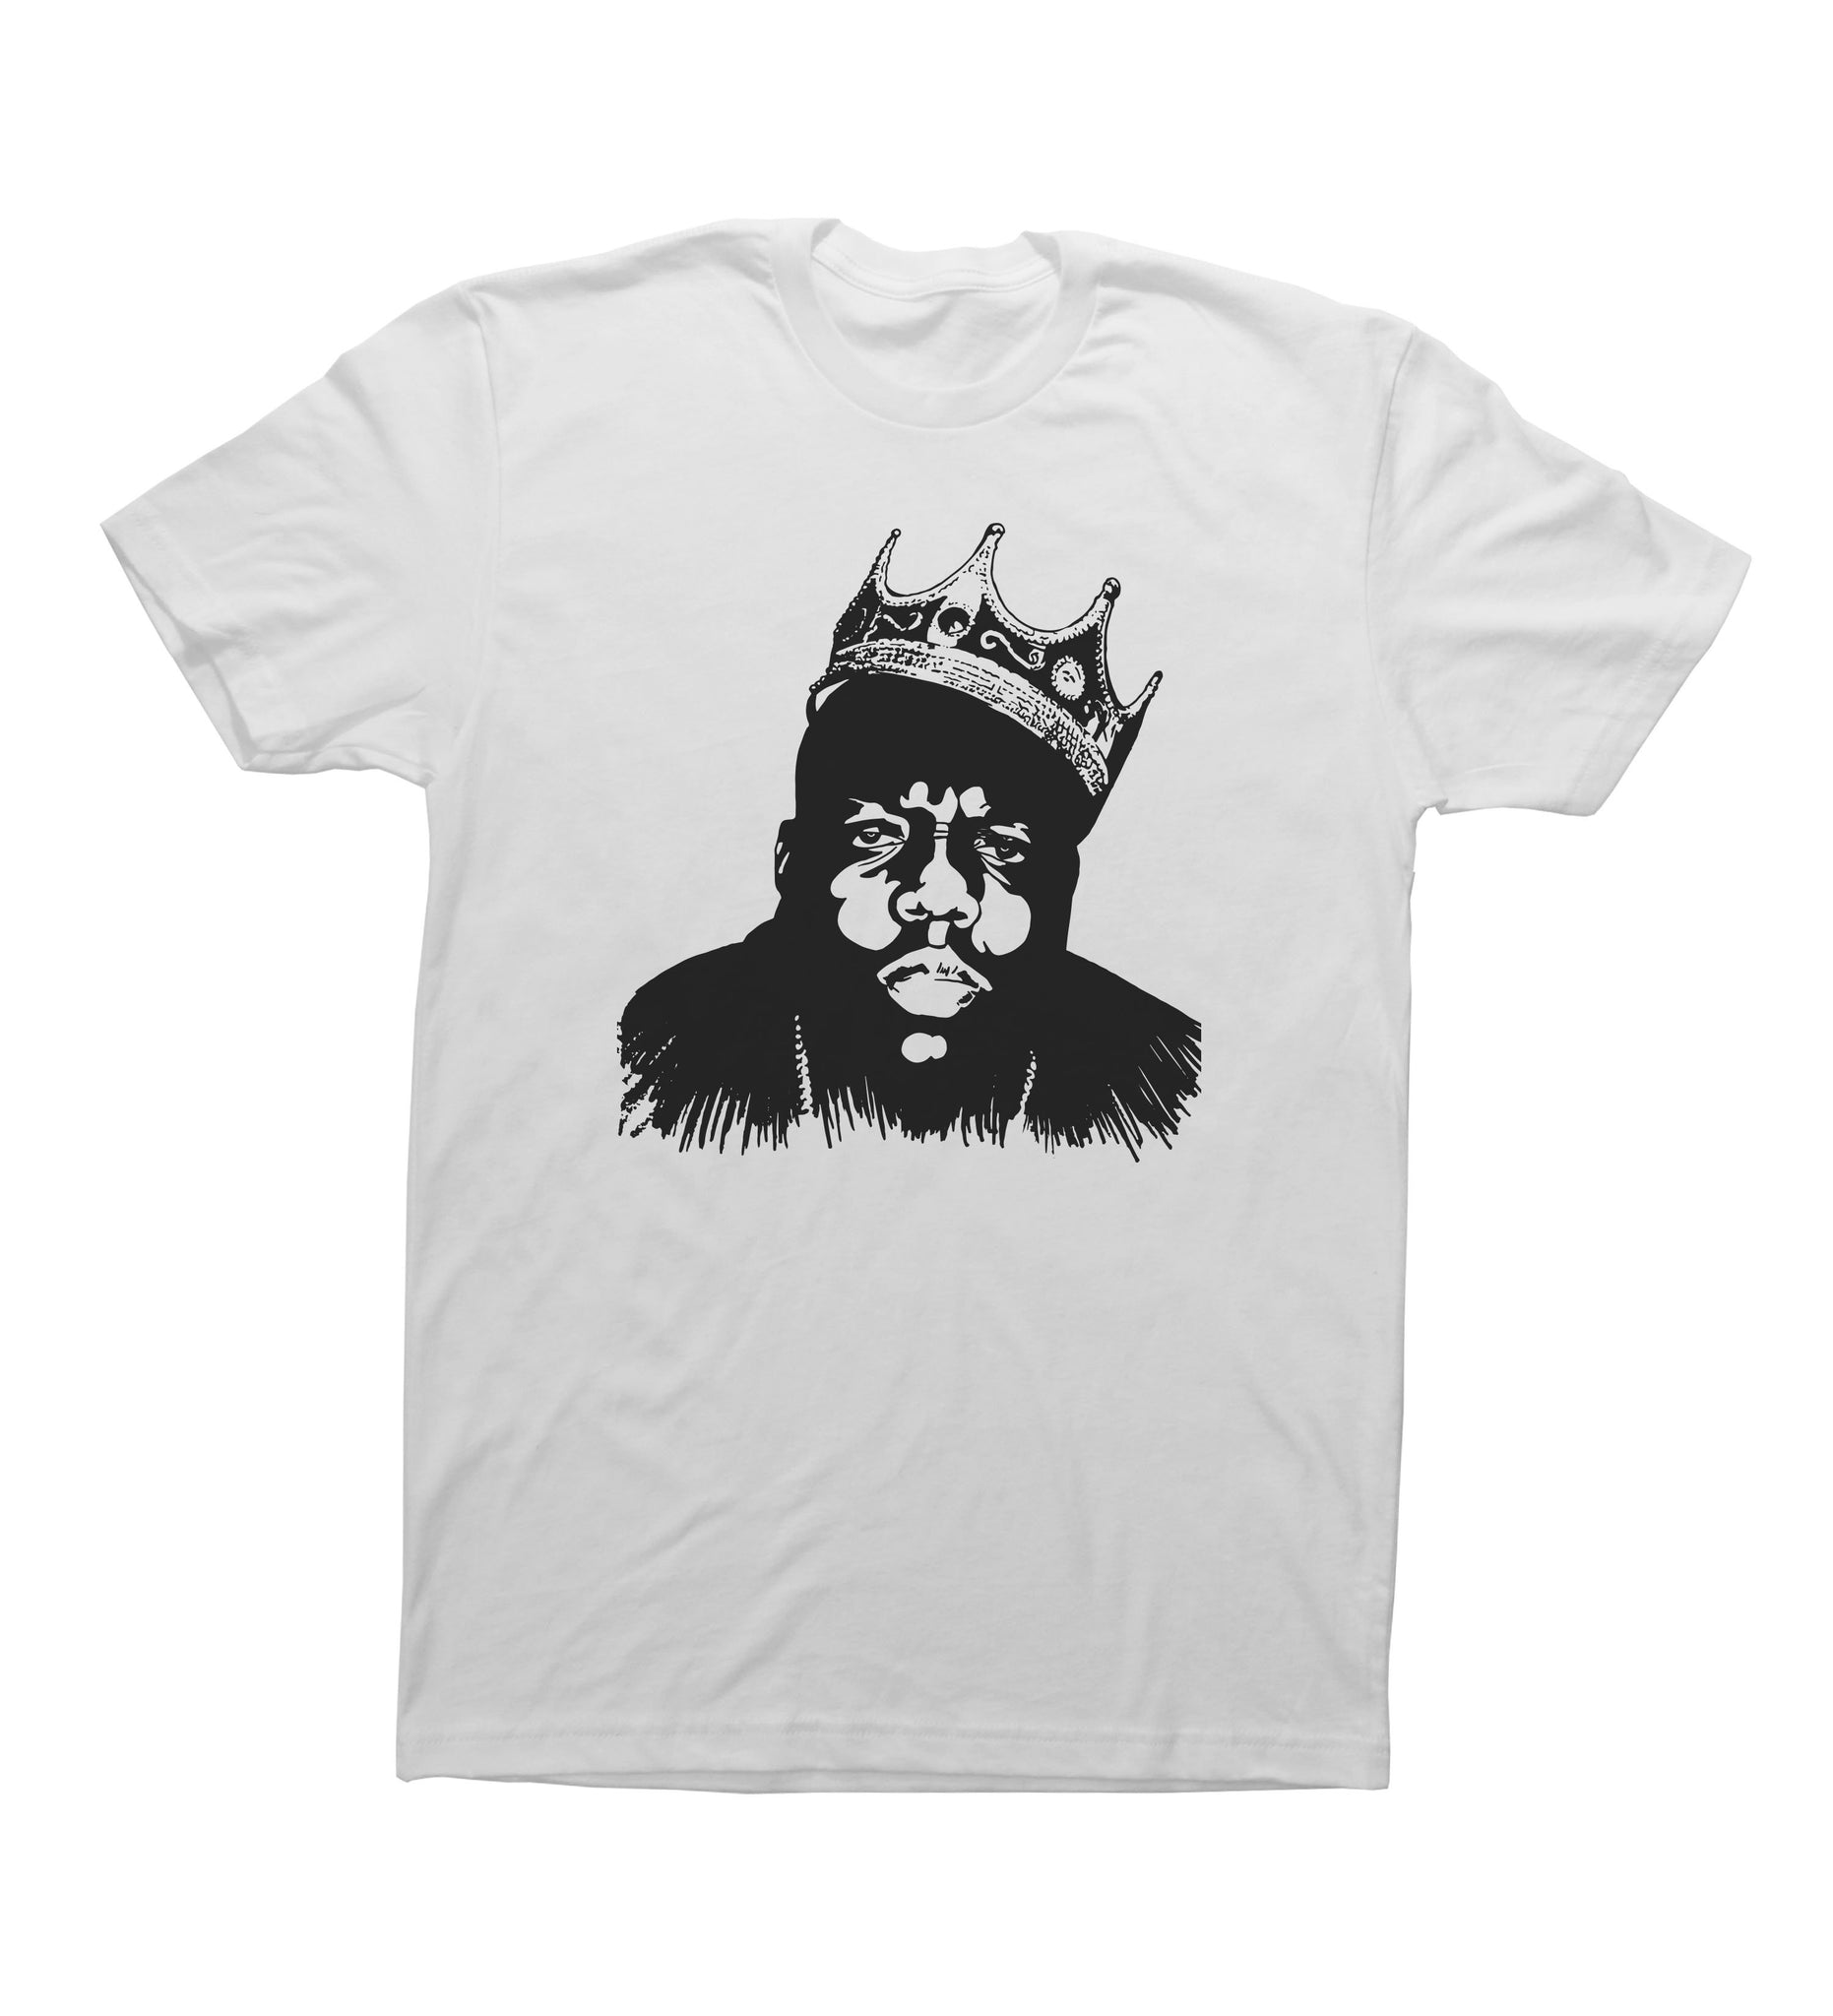 White Adult Unisex T-Shirt with Biggie Smalls Graphic